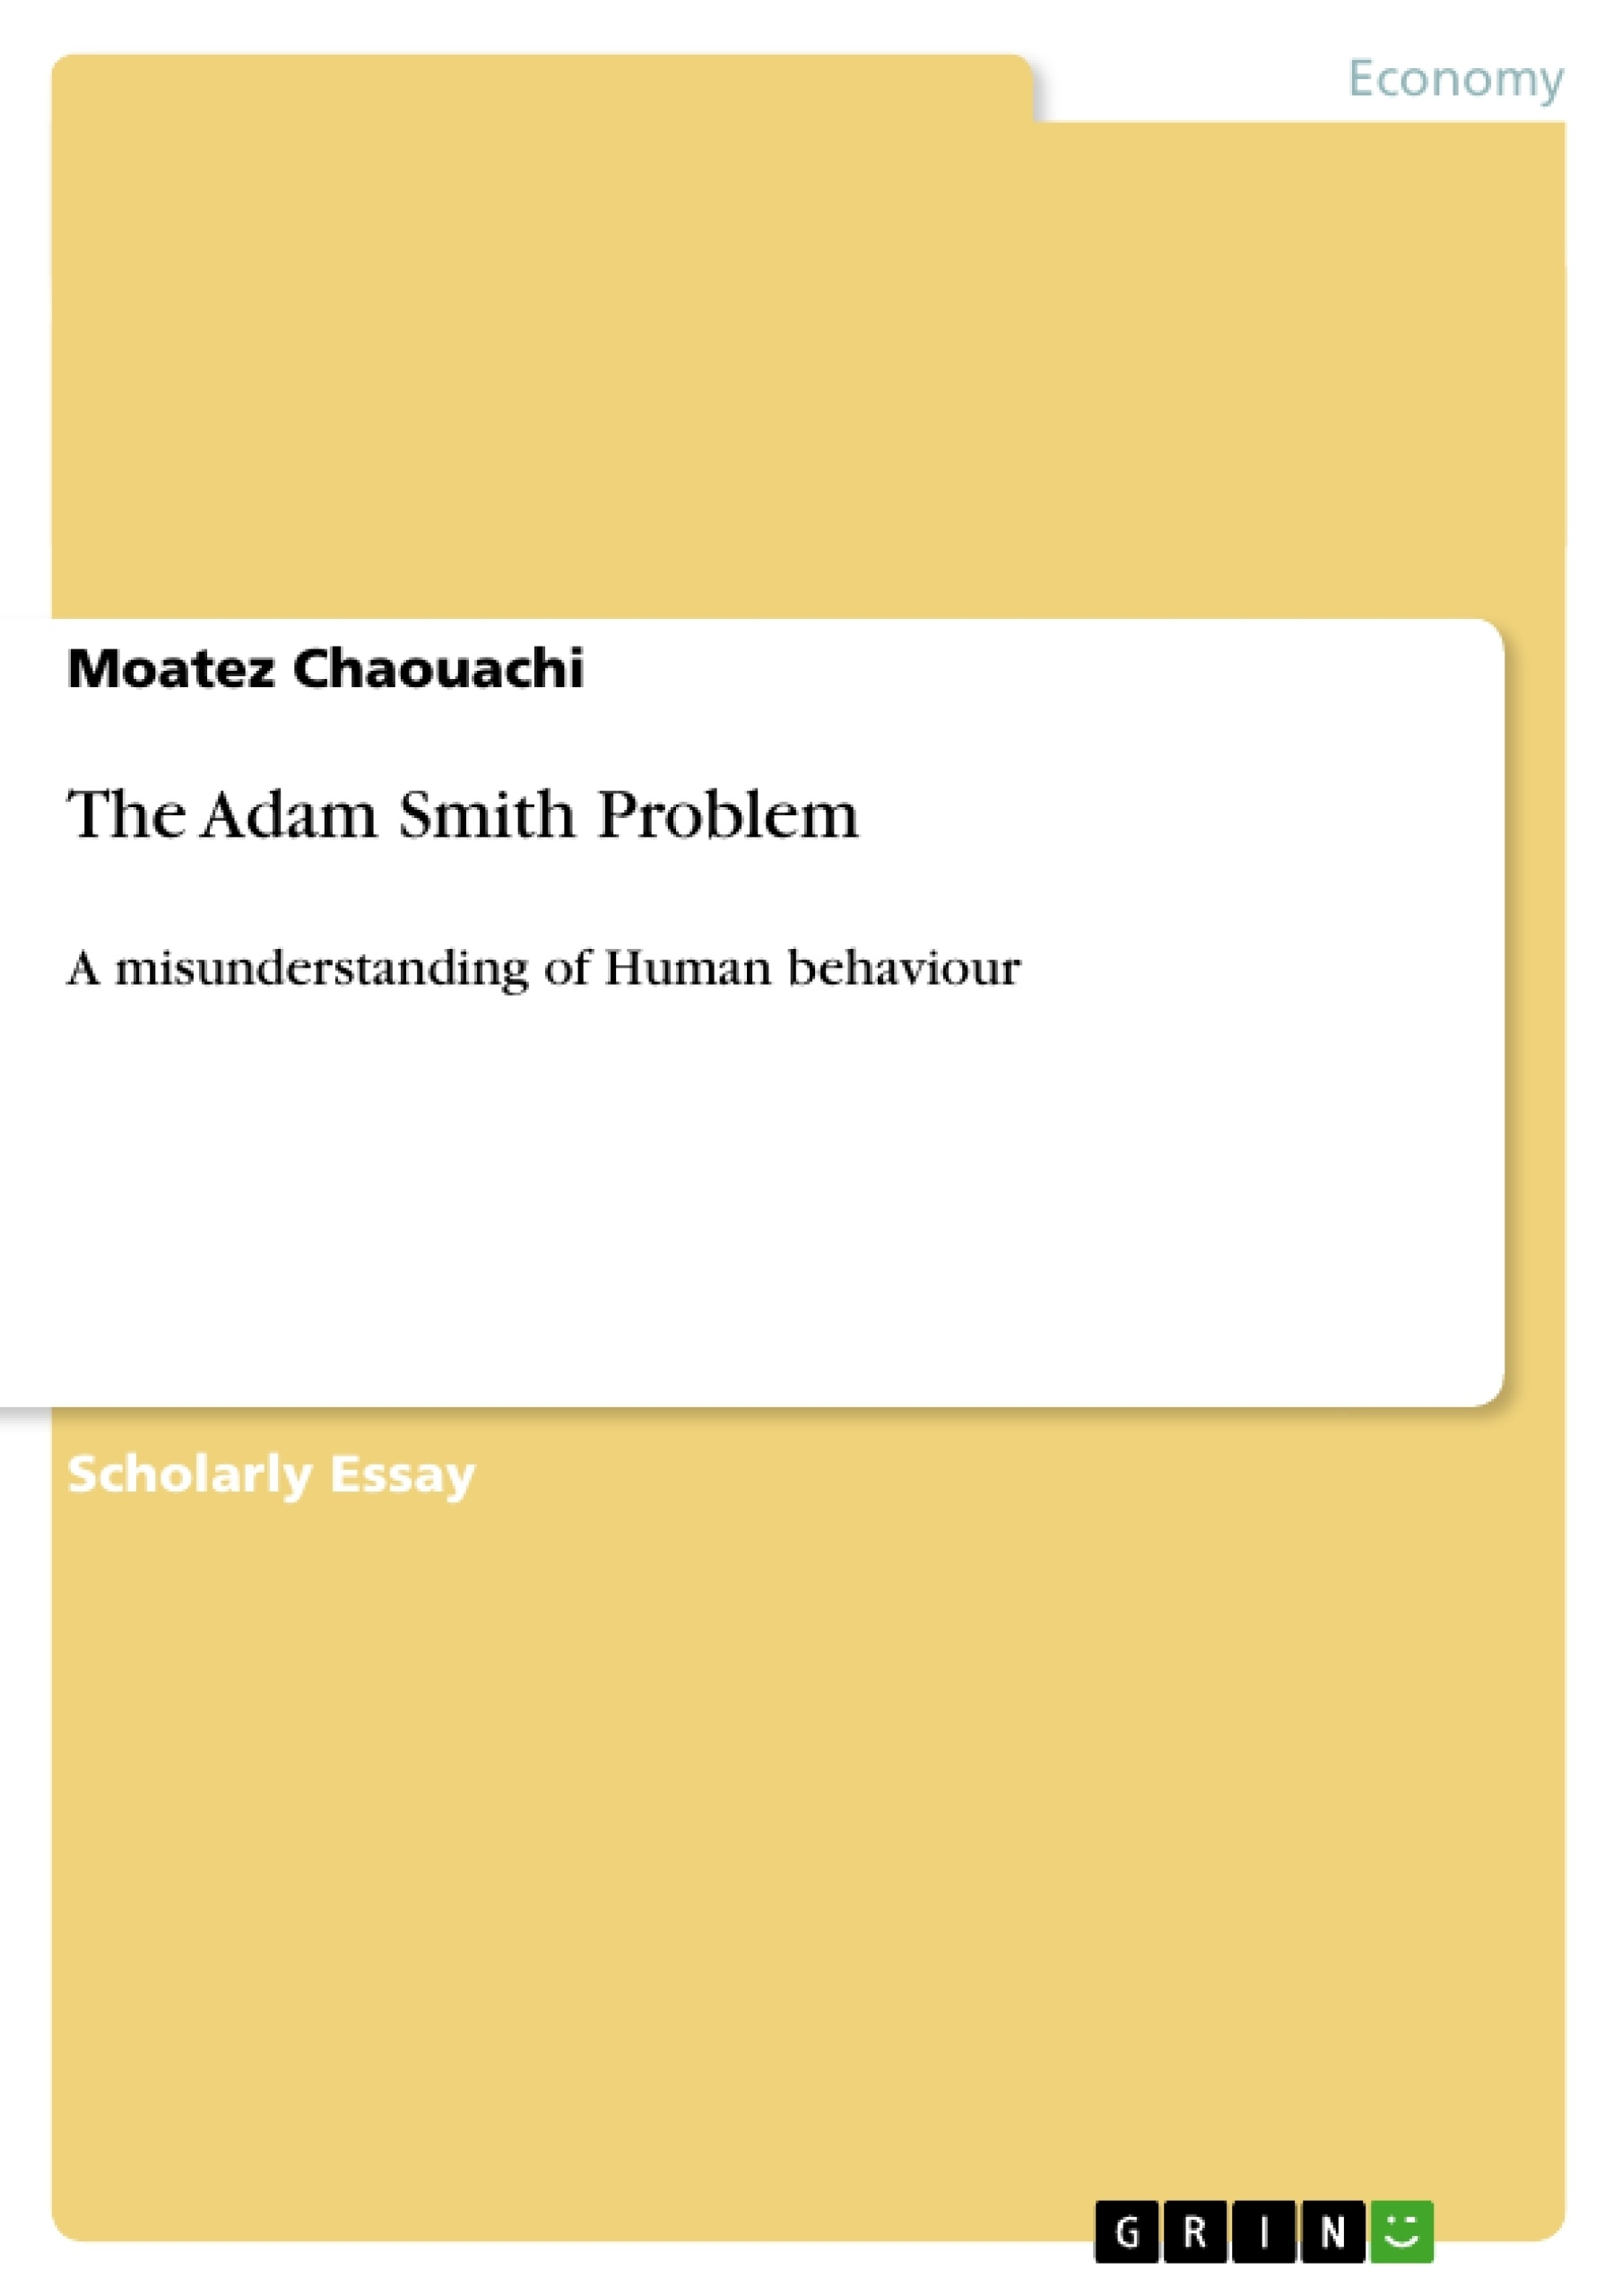 Title: The Adam Smith Problem